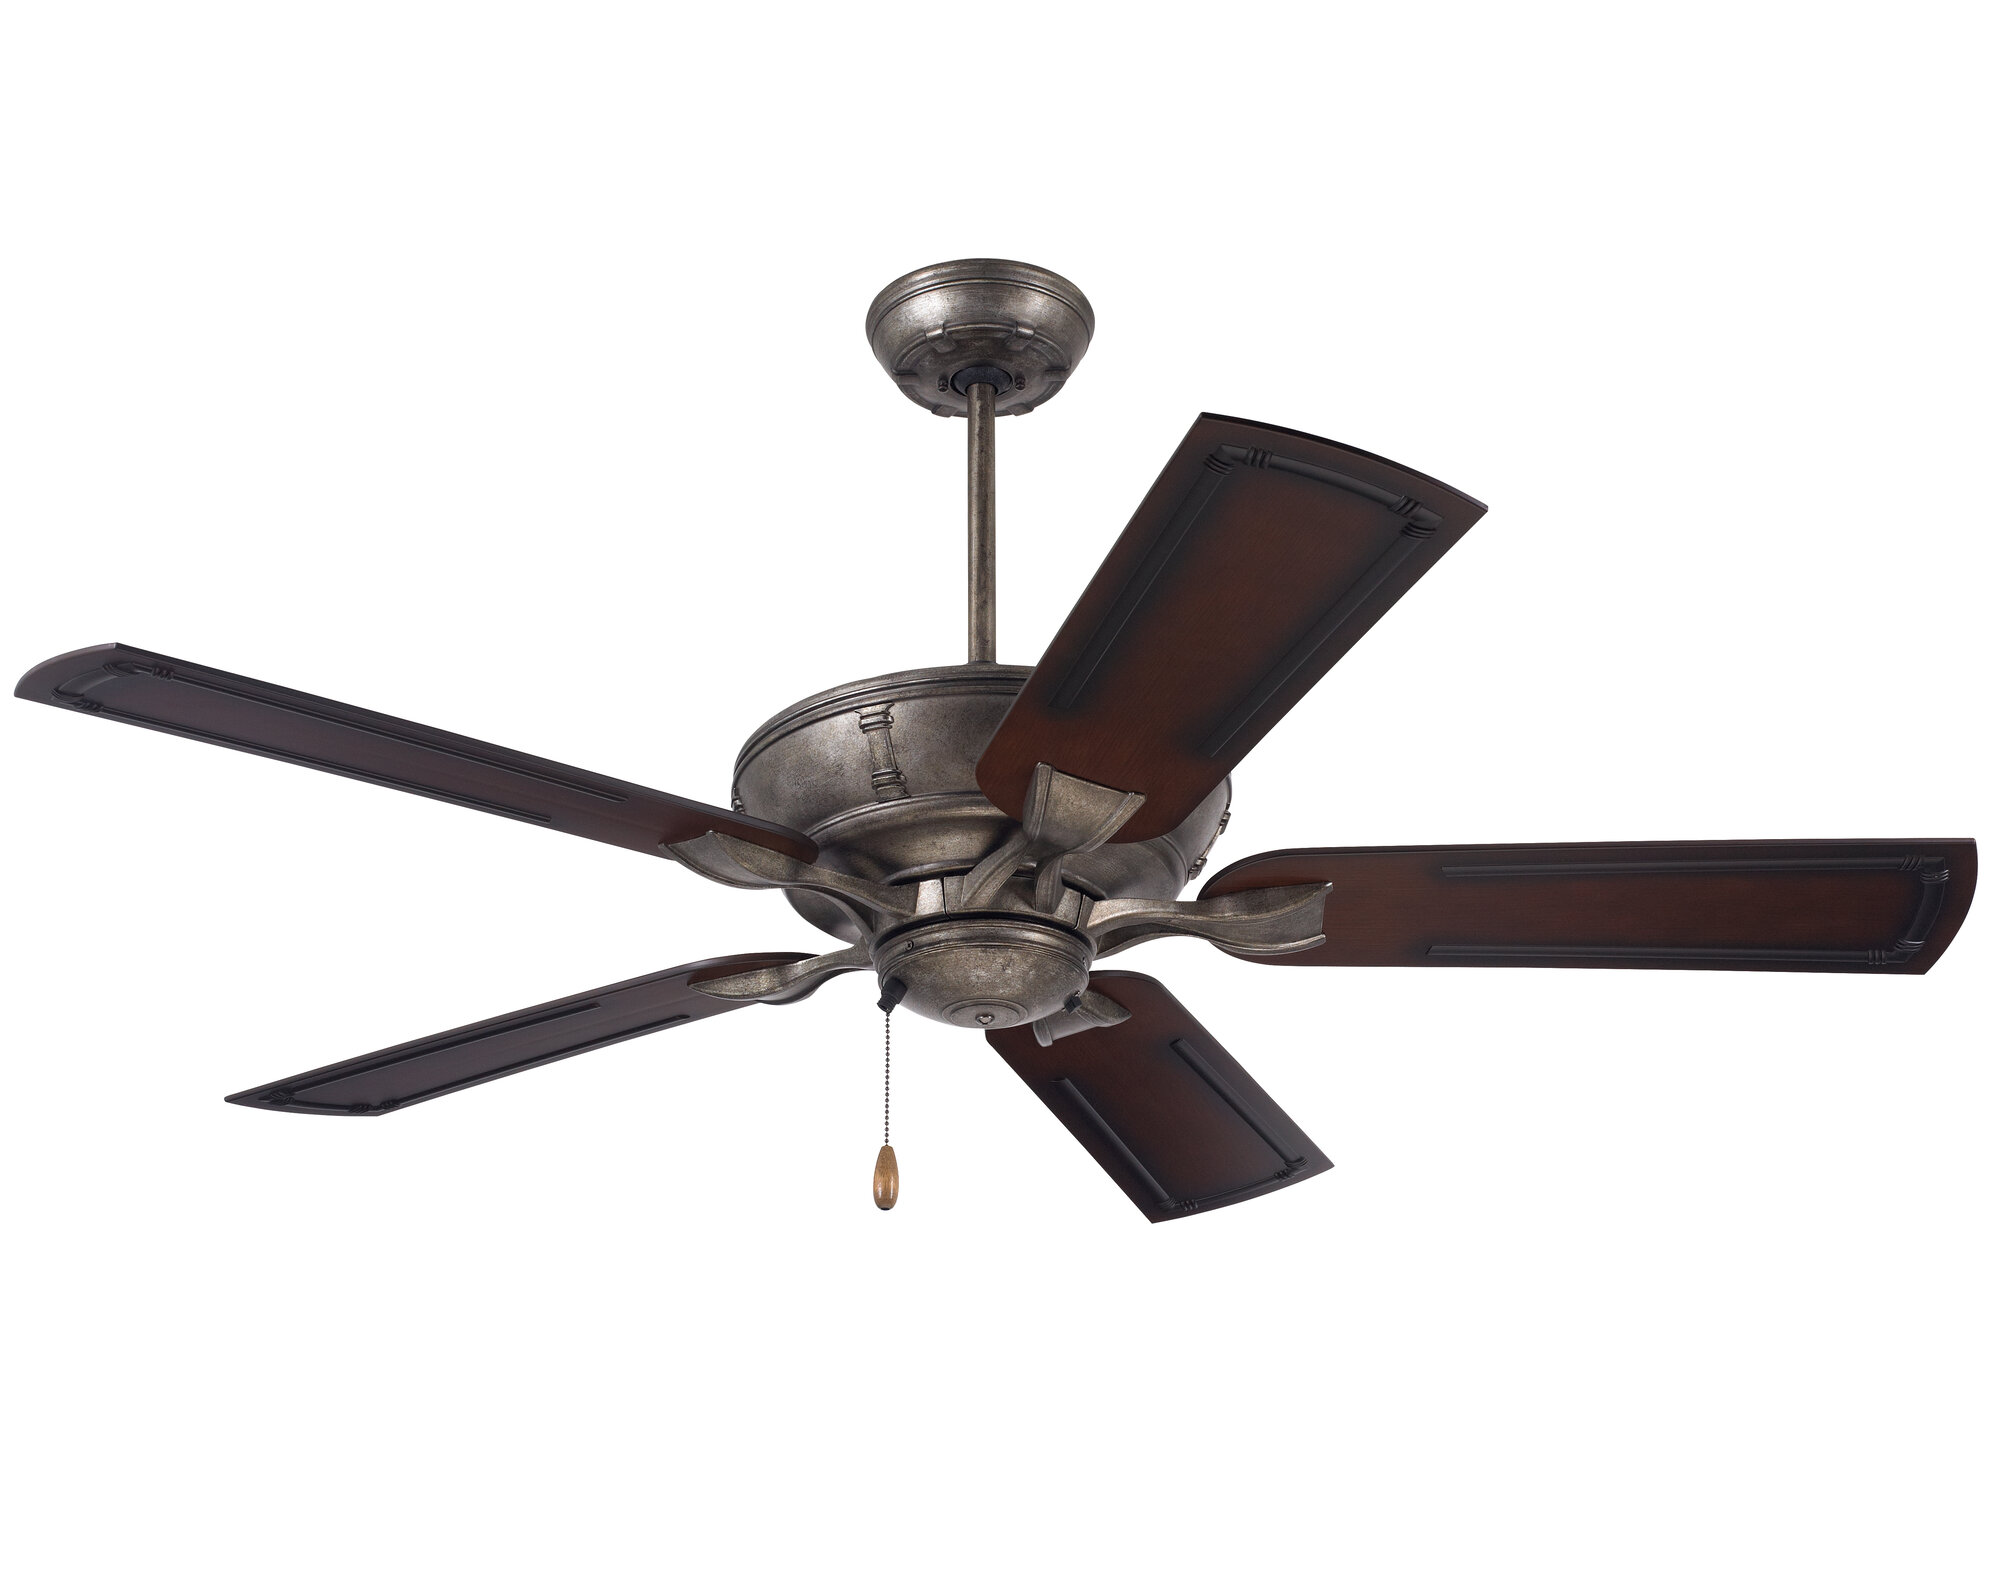 Emerson Ceiling Fans 54 Quot Welland 5 Blade Ceiling Fan Ebay